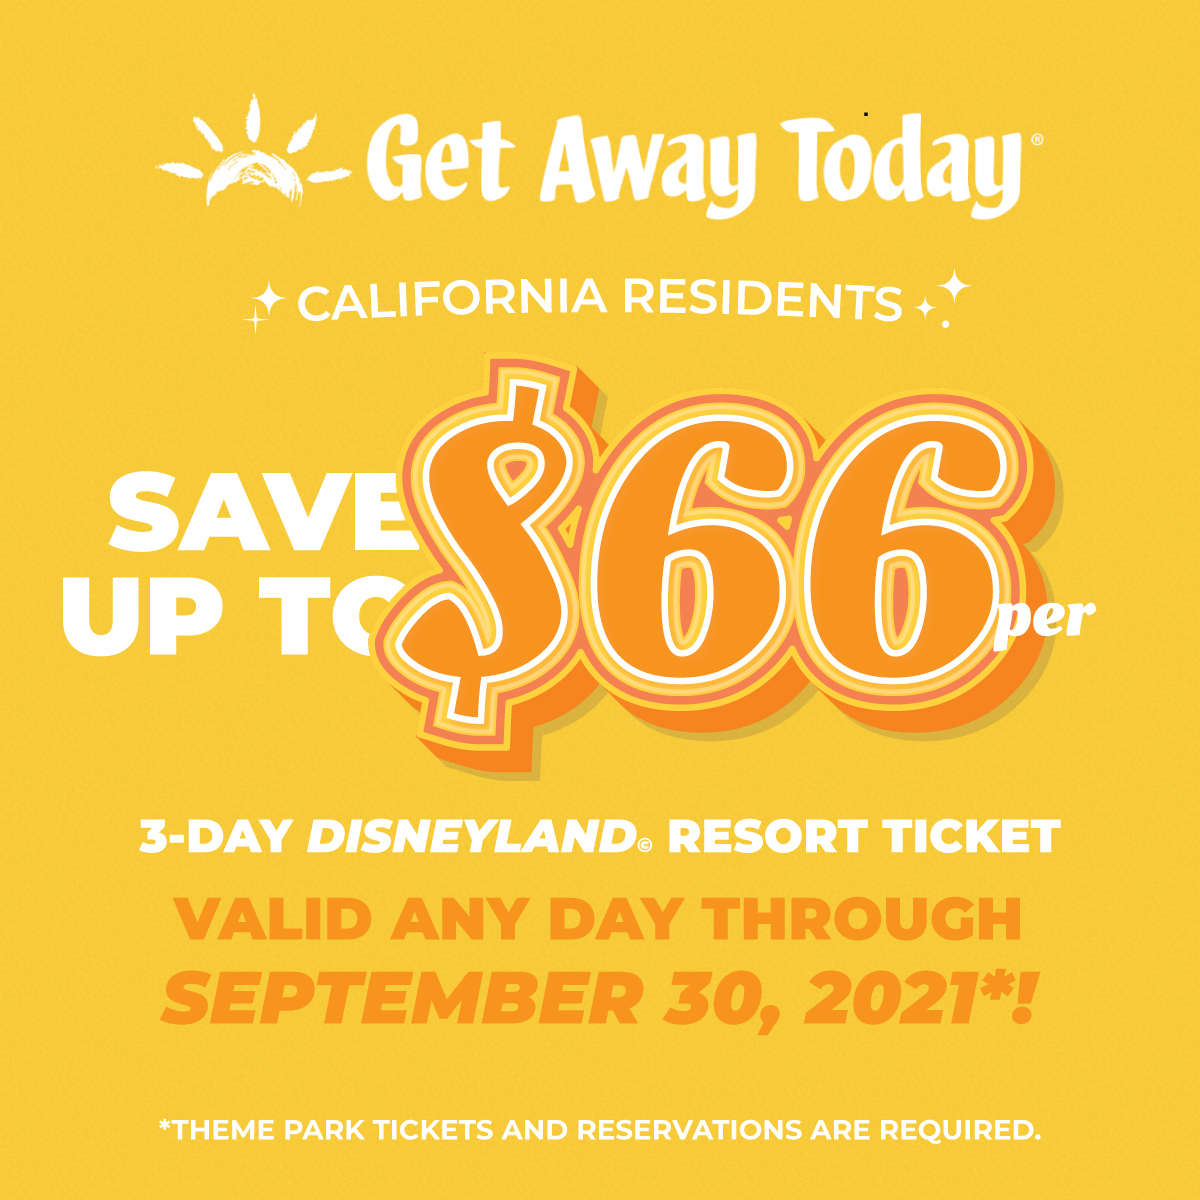 California Residents Save $66 on Disneyland Tickets Offer